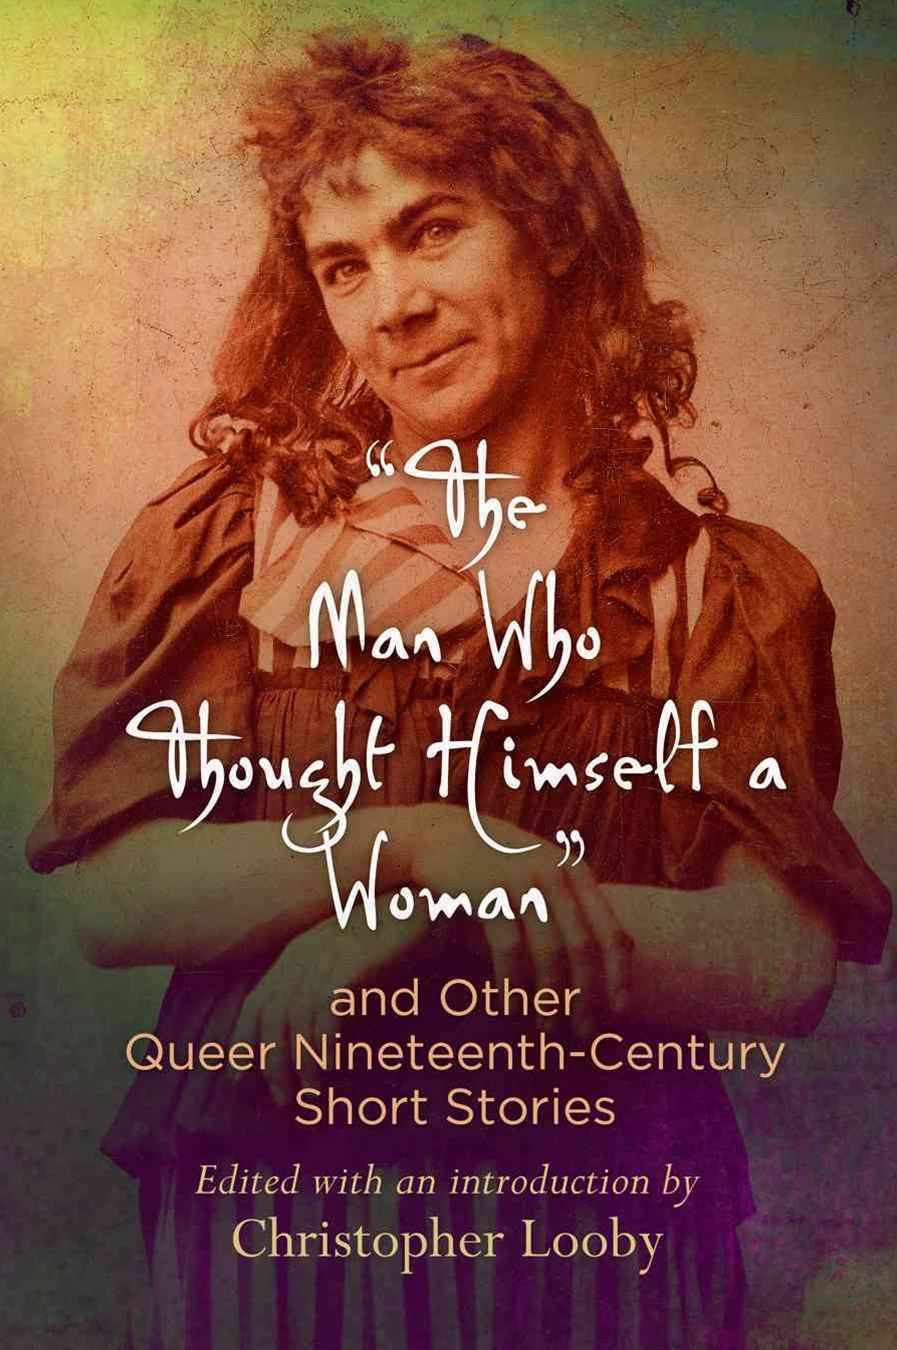 &quote;The Man Who Thought Himself a Woman&quote; and Other Queer Nineteenth-Century Short Stories